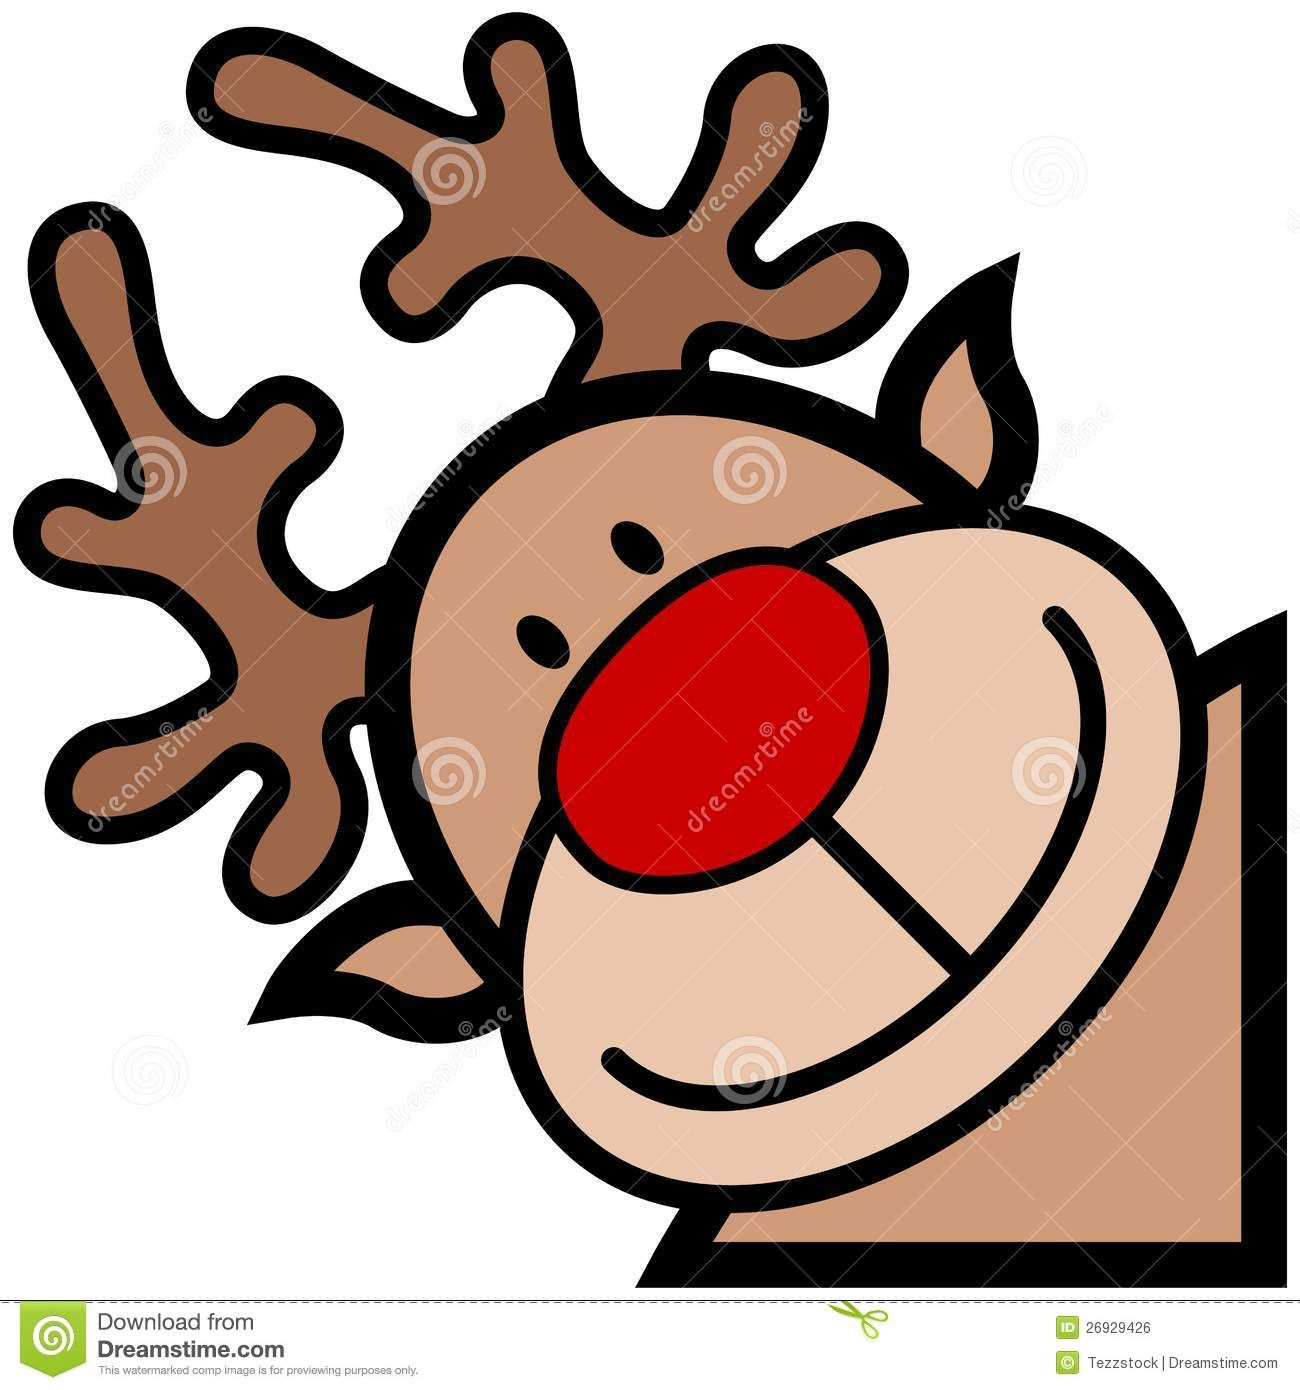 Reindeer Cartoon Royalty Free Stock Image Image 26929426 Cartoon Reindeer Reindeer Face Reindeer